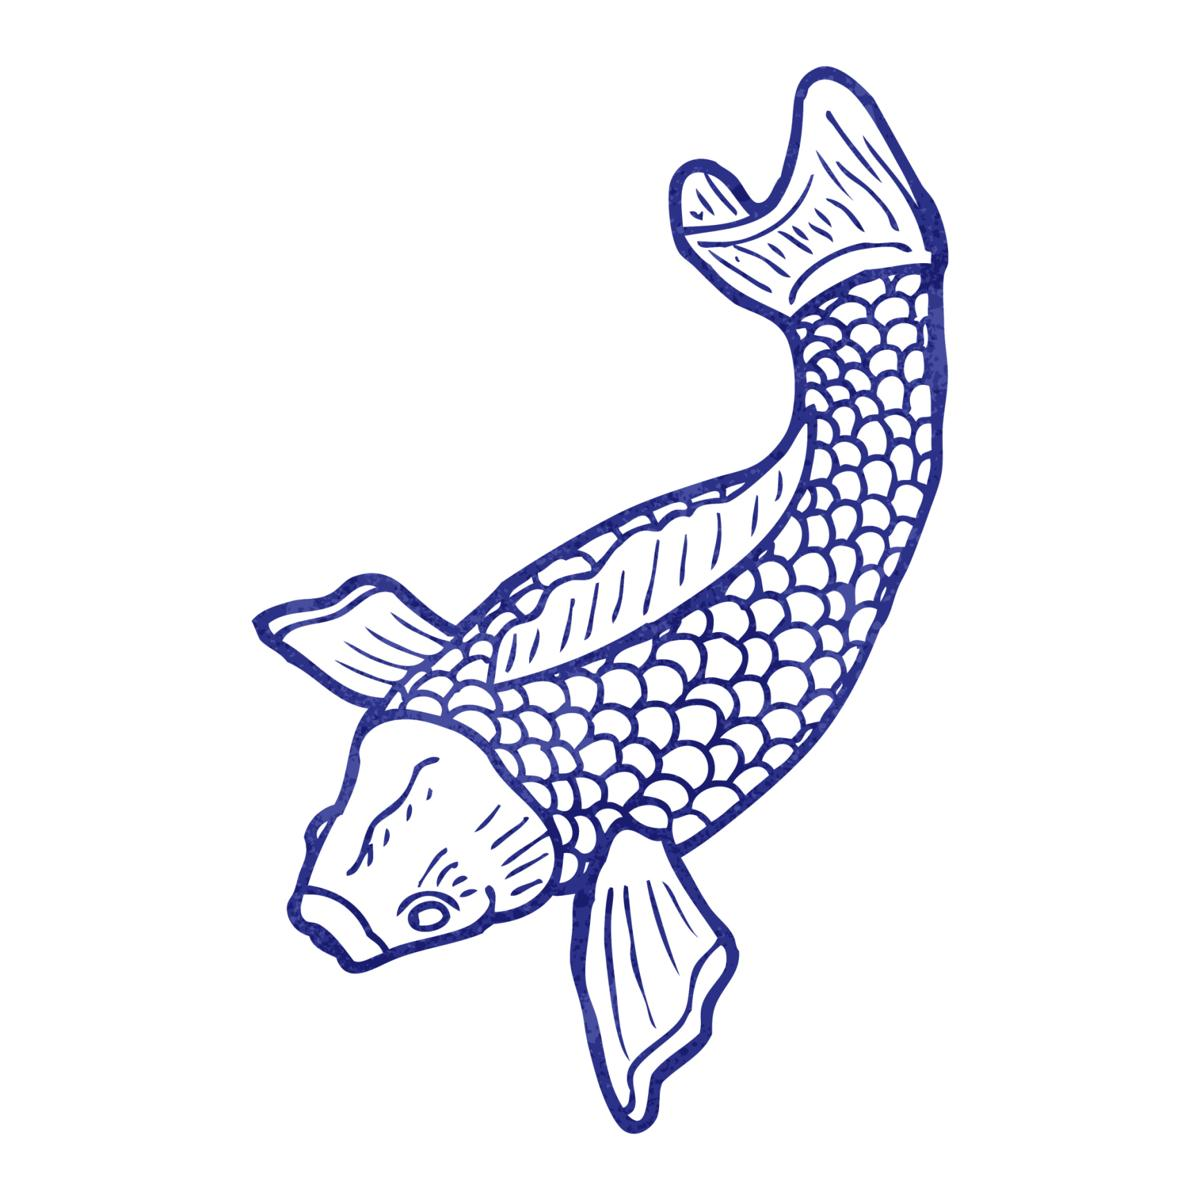 1200x1200 Tips For Drawing The Symbolic Koi Fish In A Few Simple Steps